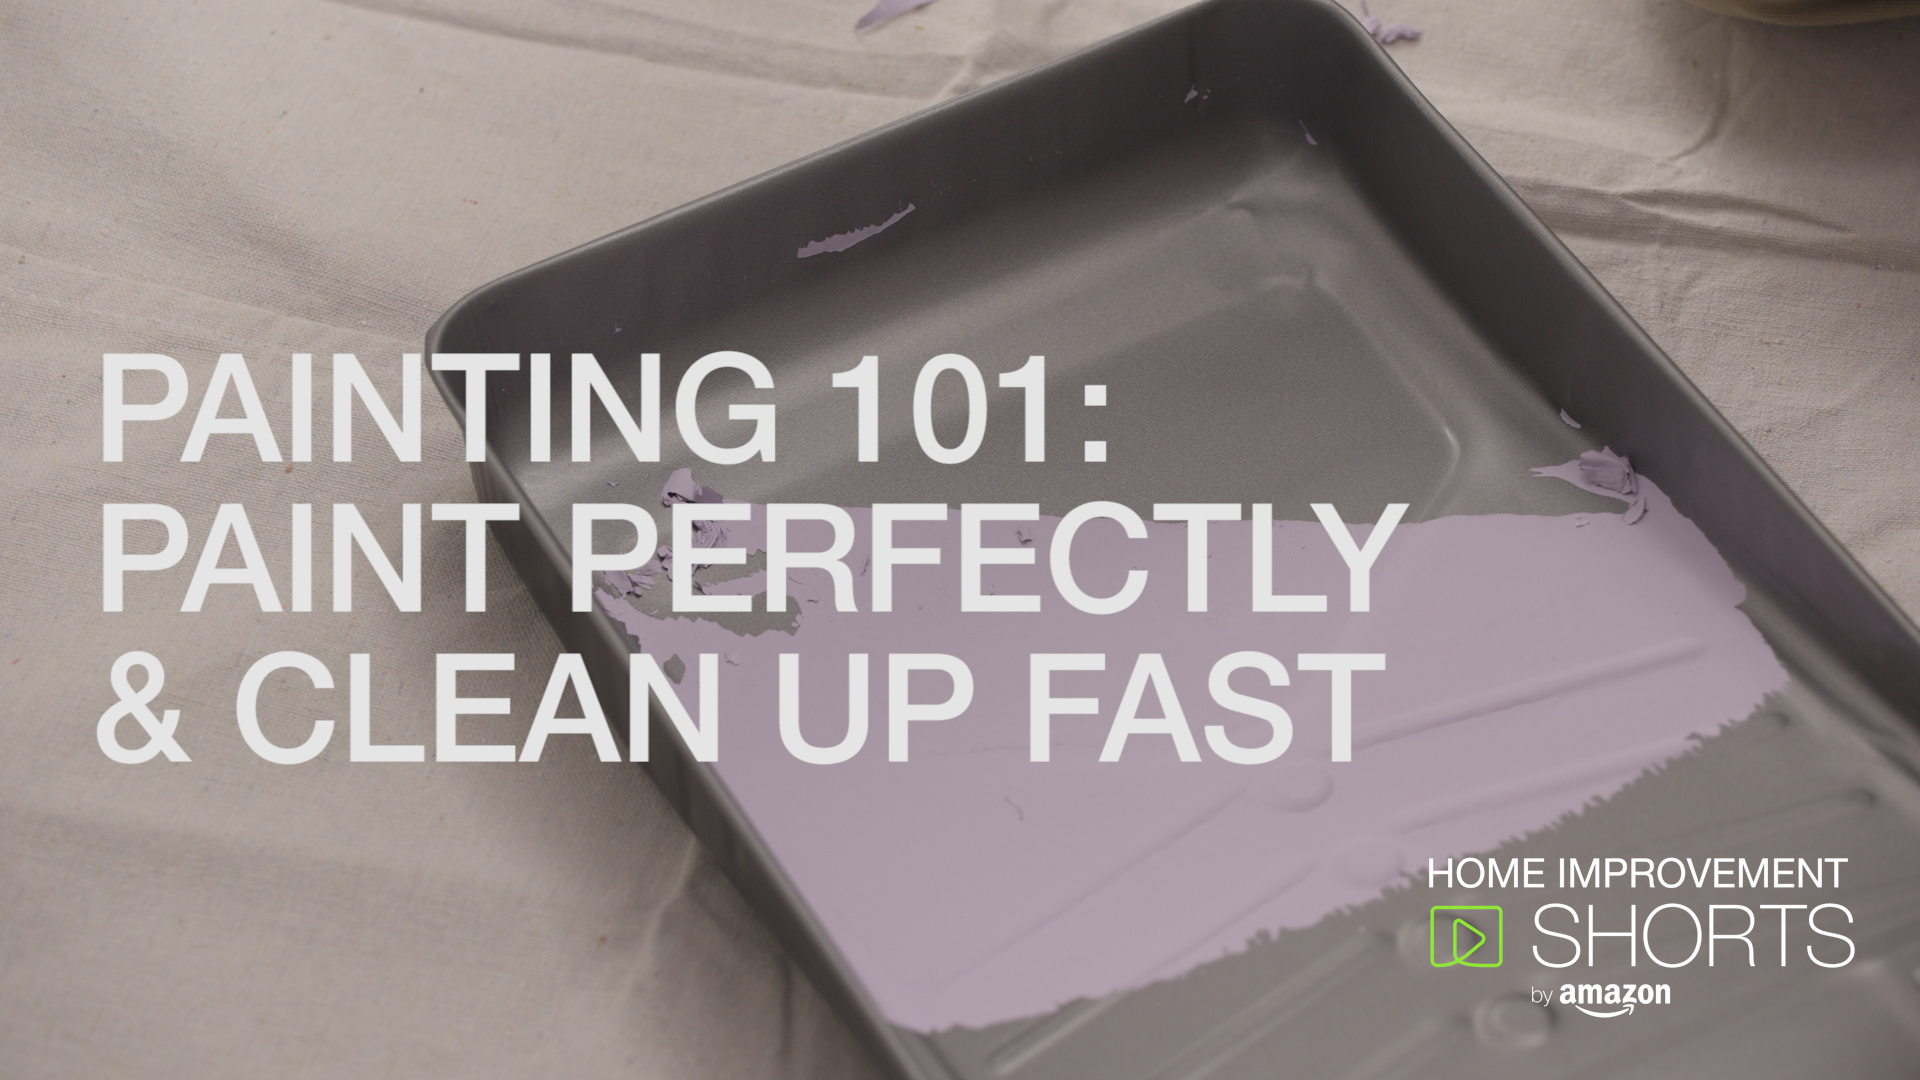 Painting 101: Paint Perfectly & Clean Up Fast